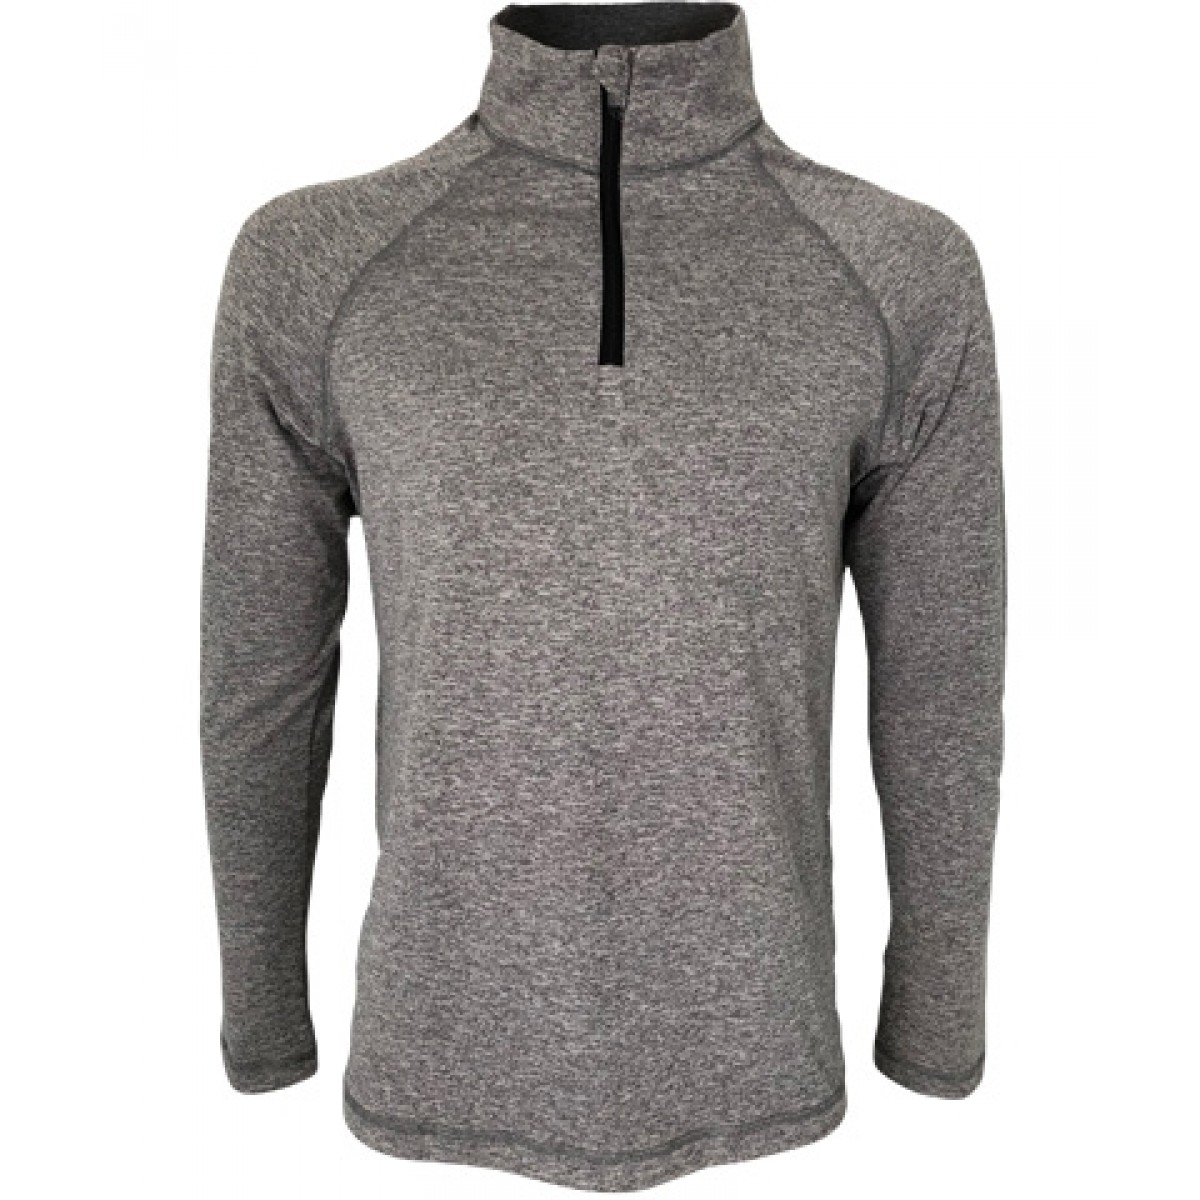 Men's Quarter-Zip Lightweight Pullover-Gray -M